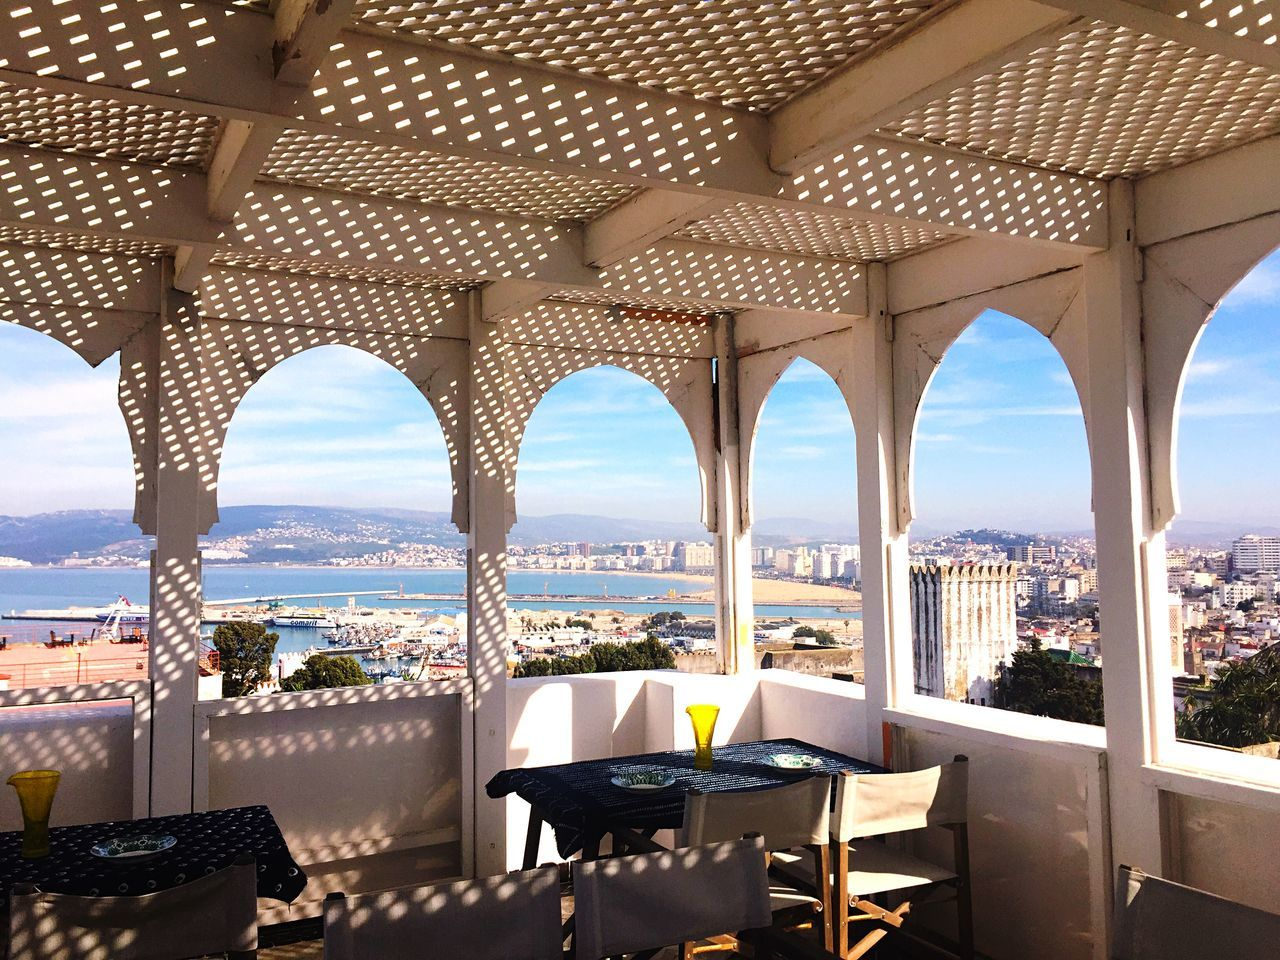 Tangier Morocco White Medina OpenEdit Architecture_collection Balcony Balcony View Outstanding From The Rooftop